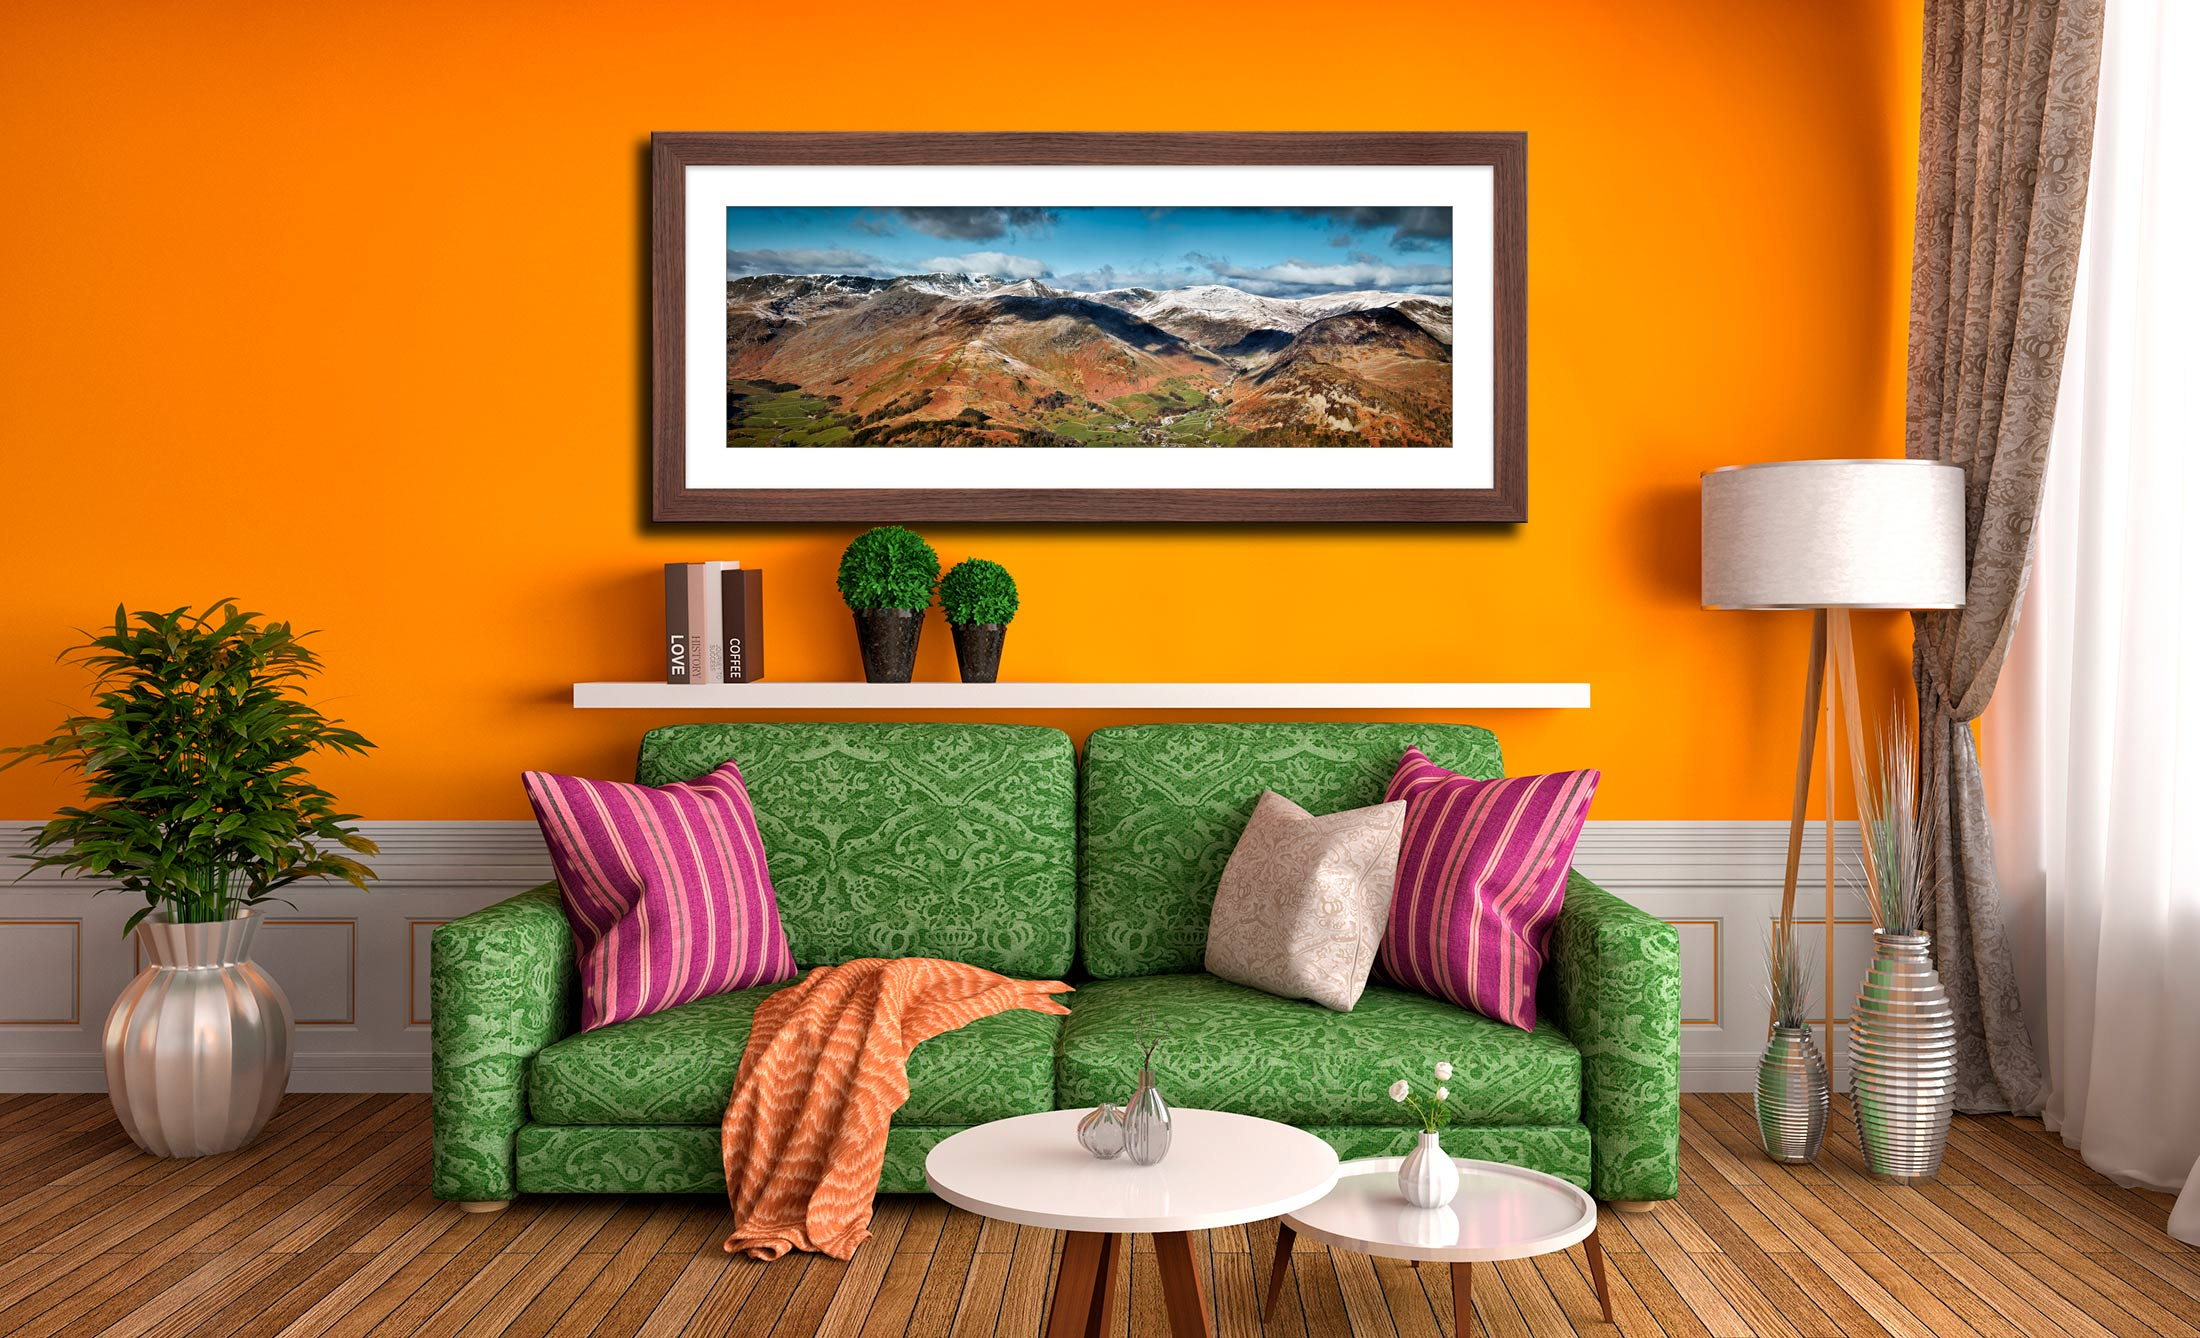 Glenridding Lake District Panorama - Framed Print with Mount on Wall